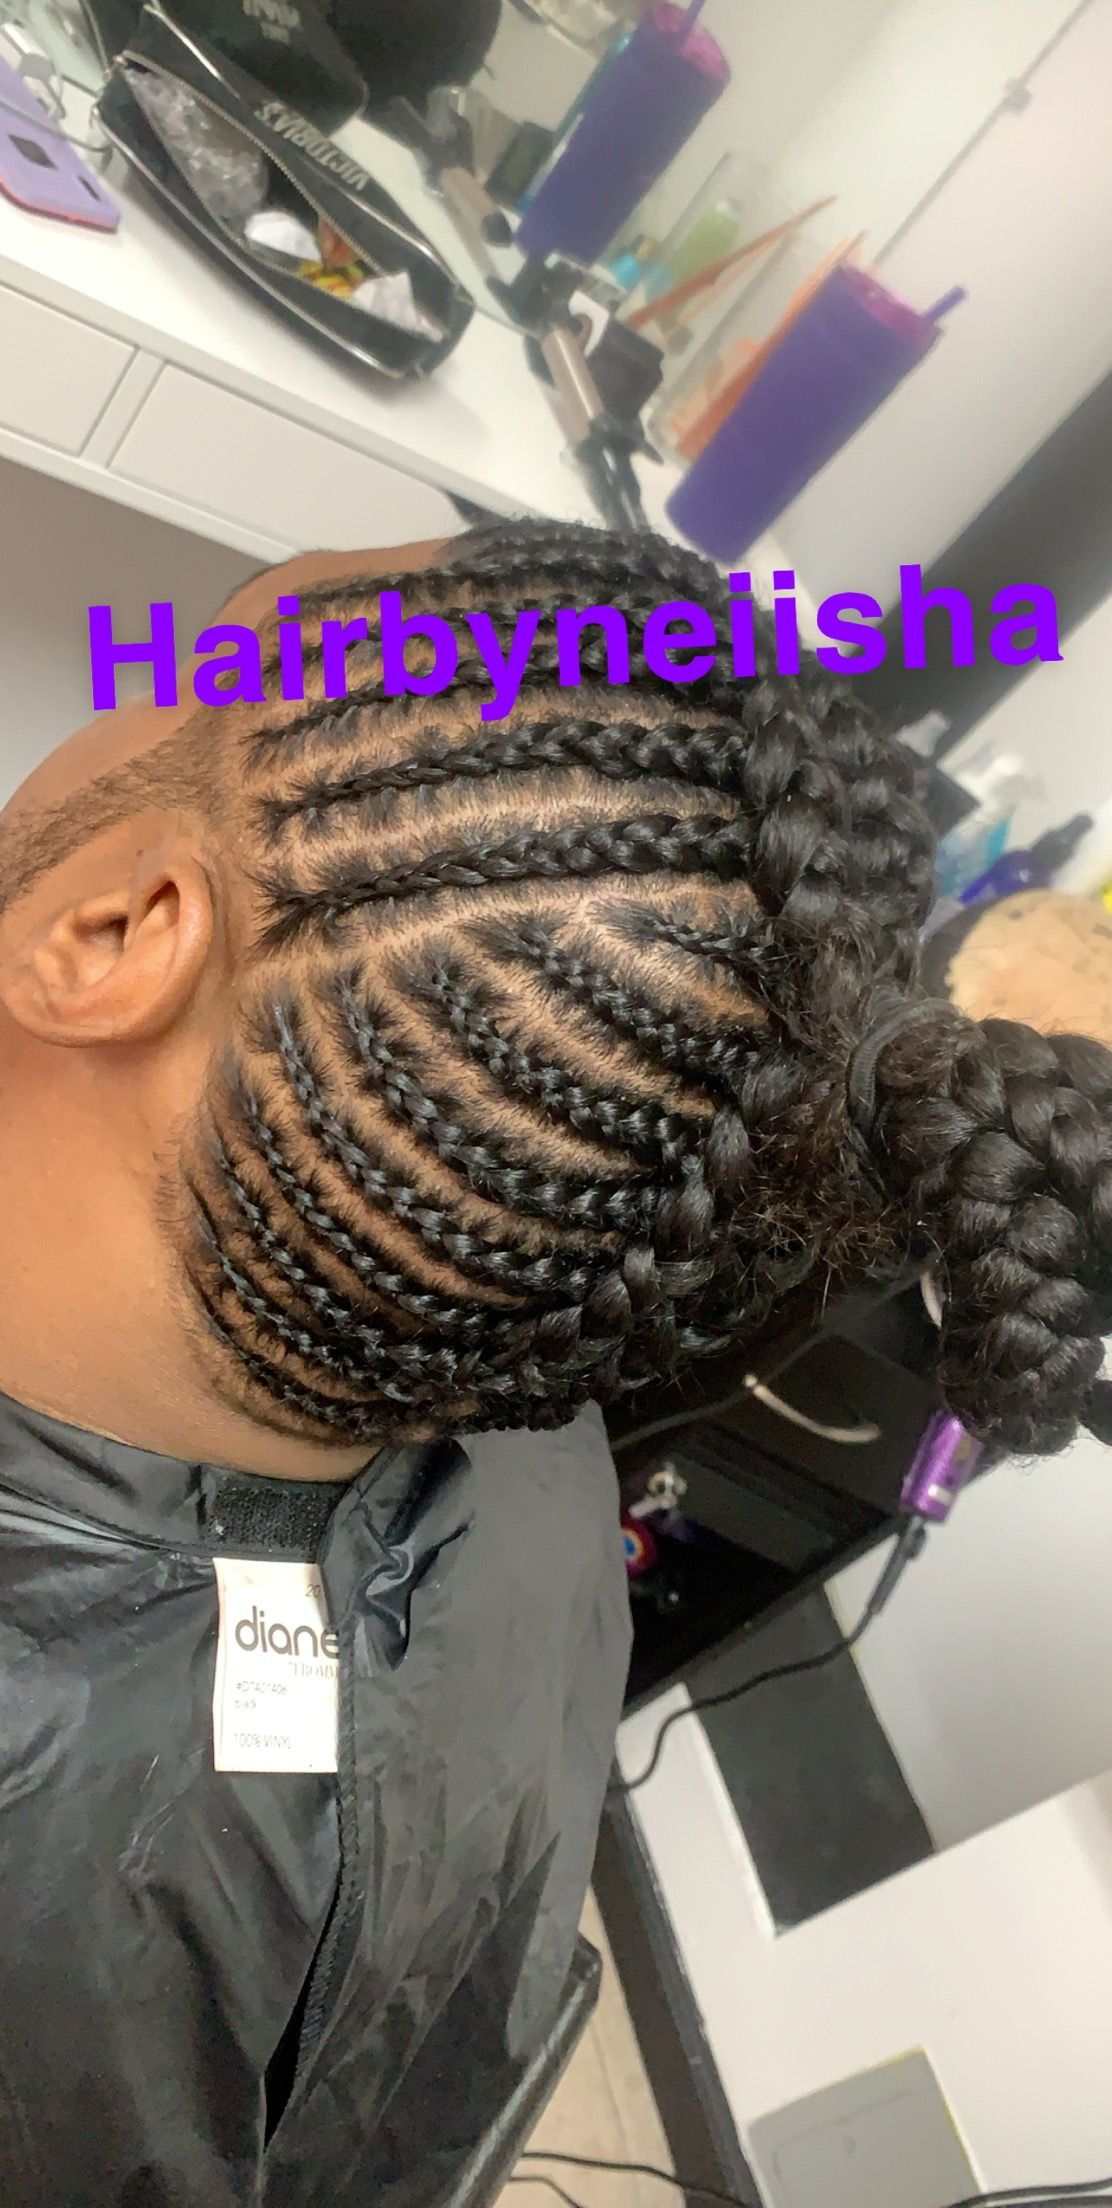 Instagram page Hairbyneiisha dm for more info | Hair ...